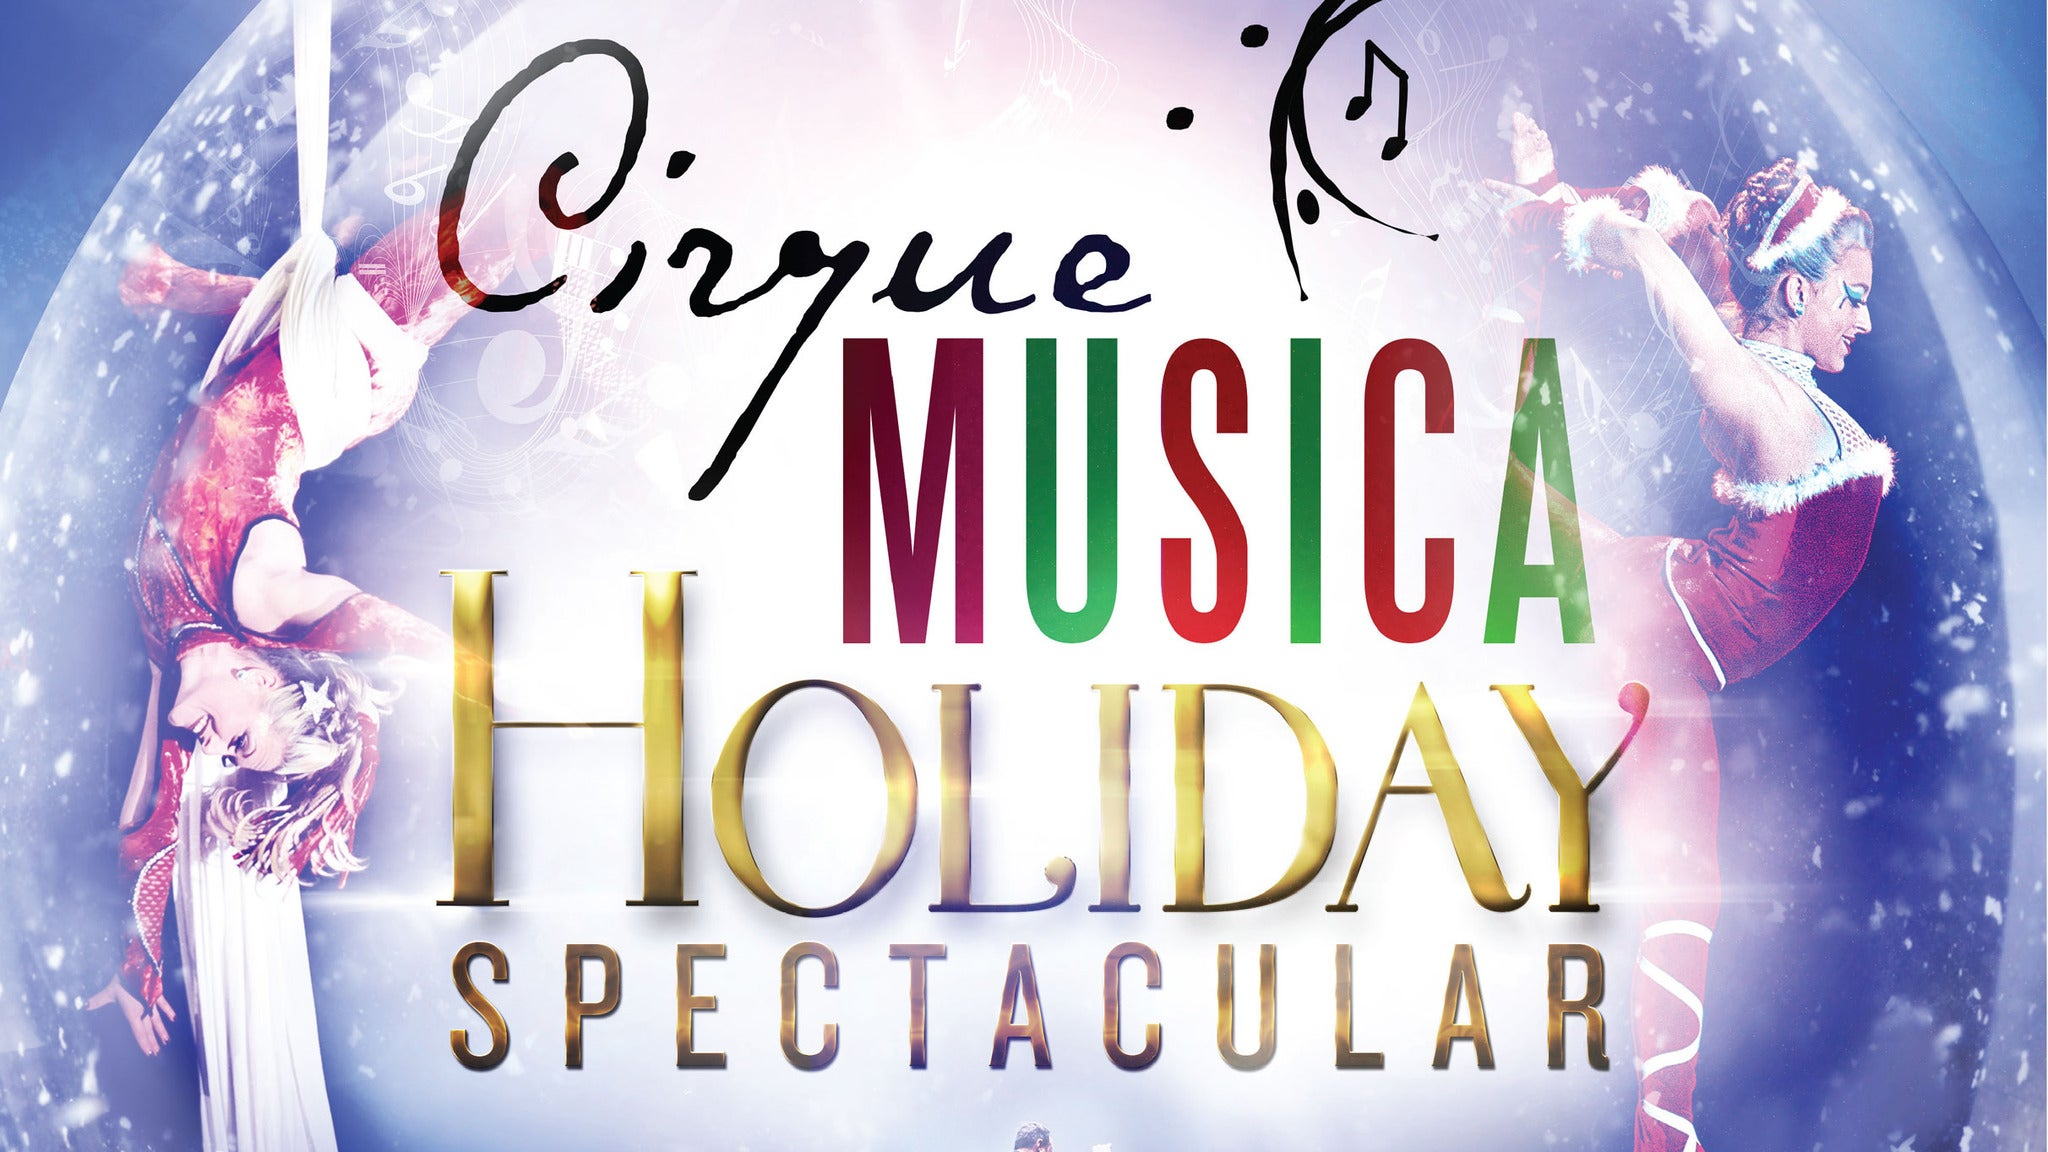 Cirque Musica Holiday Spectacular at Five Flags Center